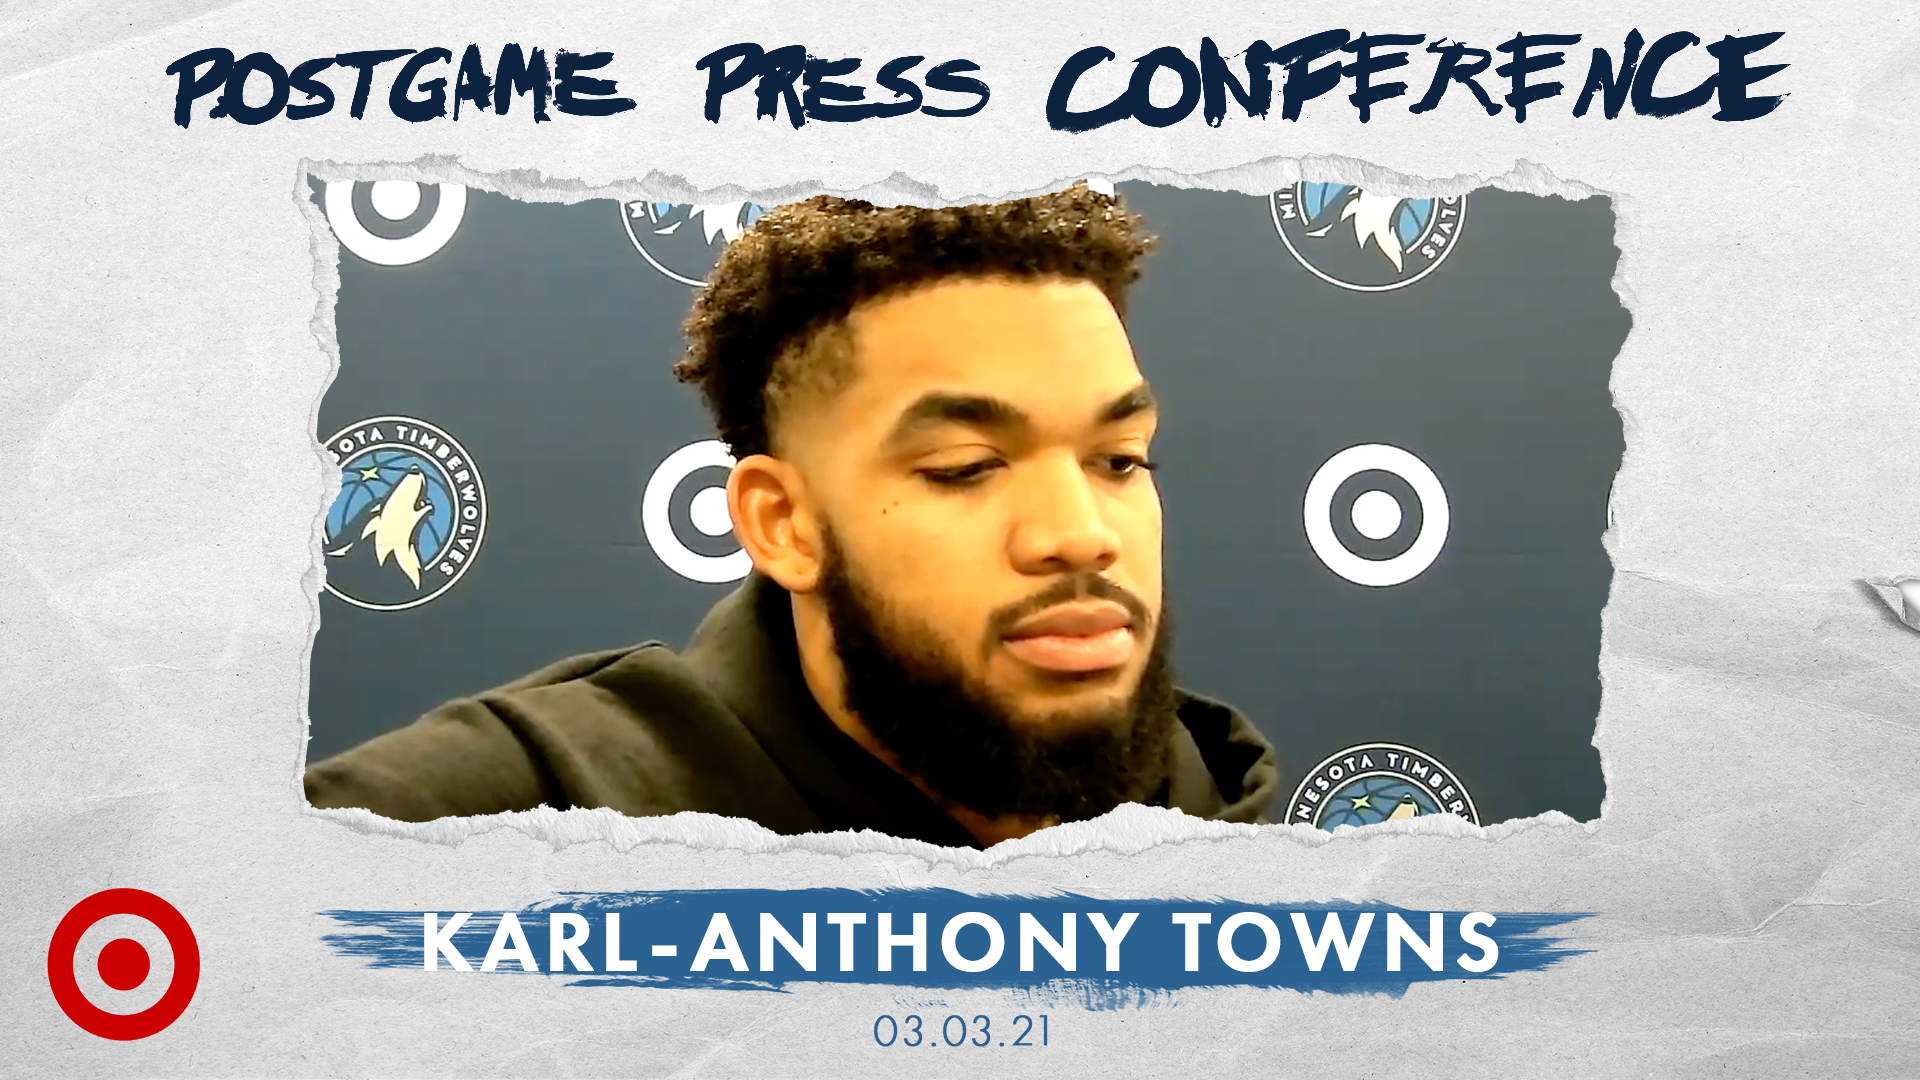 Karl-Anthony Towns Postgame Press Conference - March 3, 2021